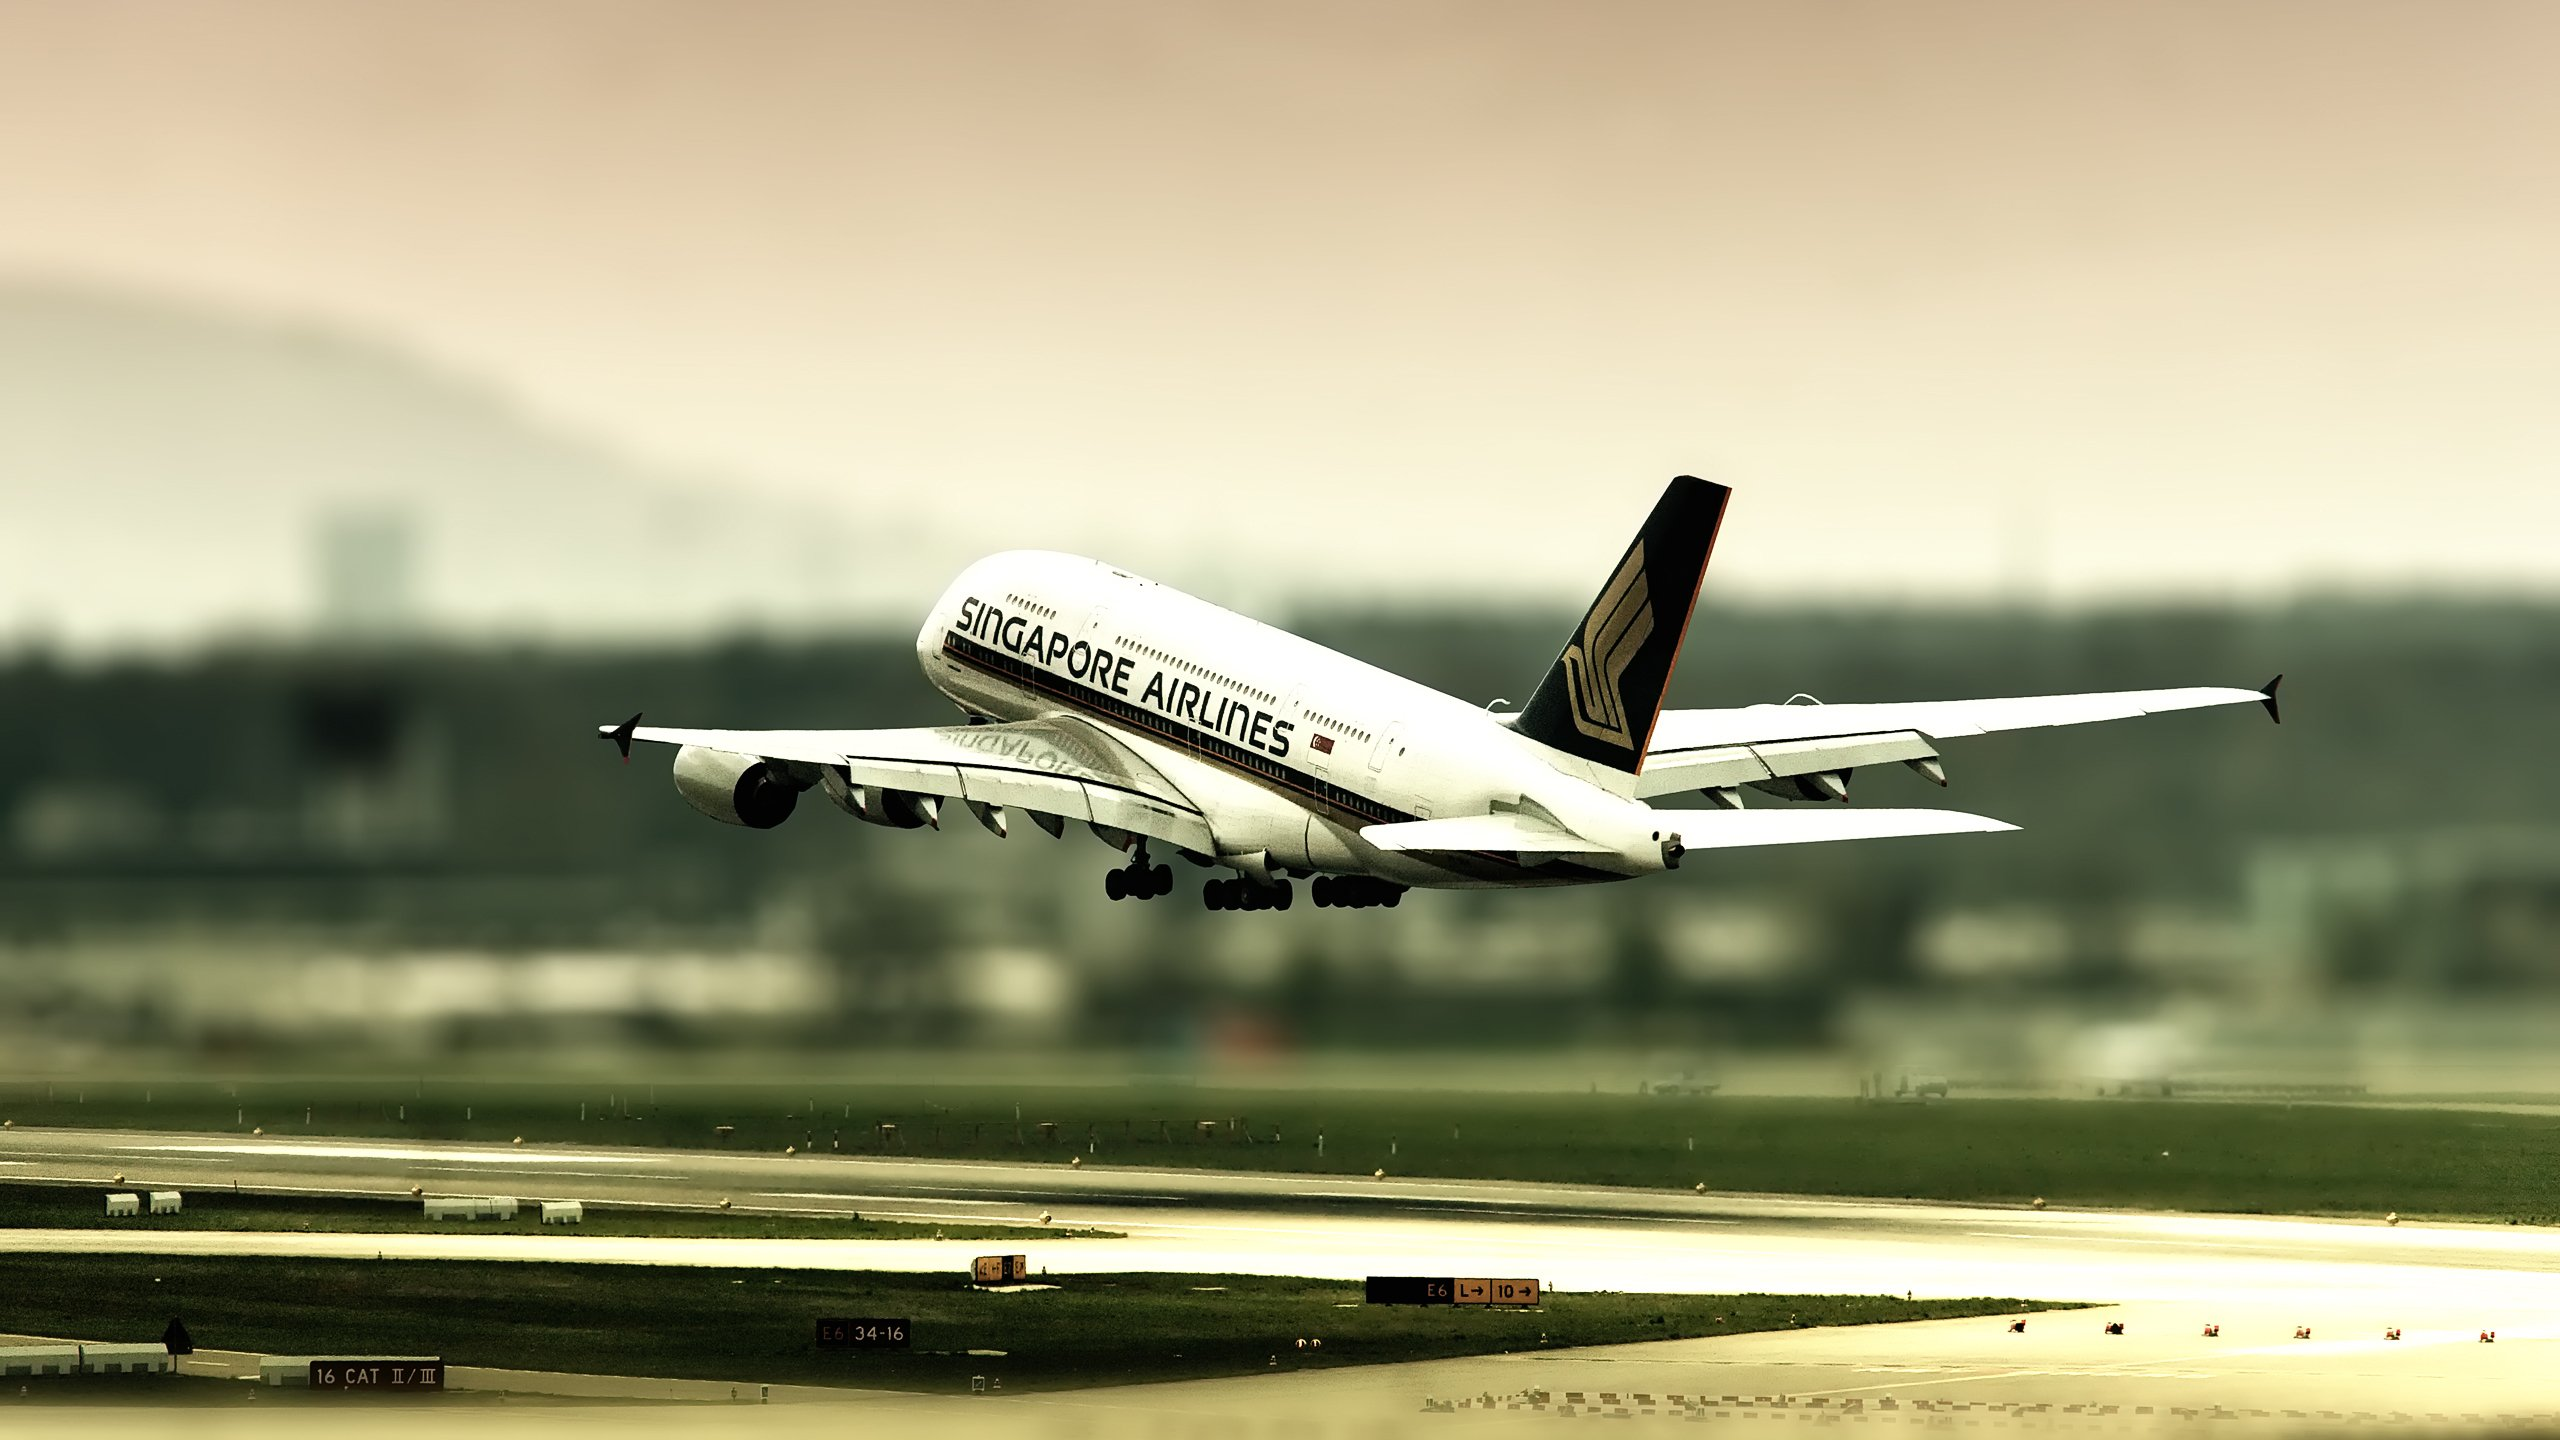 The plane take off from Singapore wallpapers and images   wallpapers 2560x1440